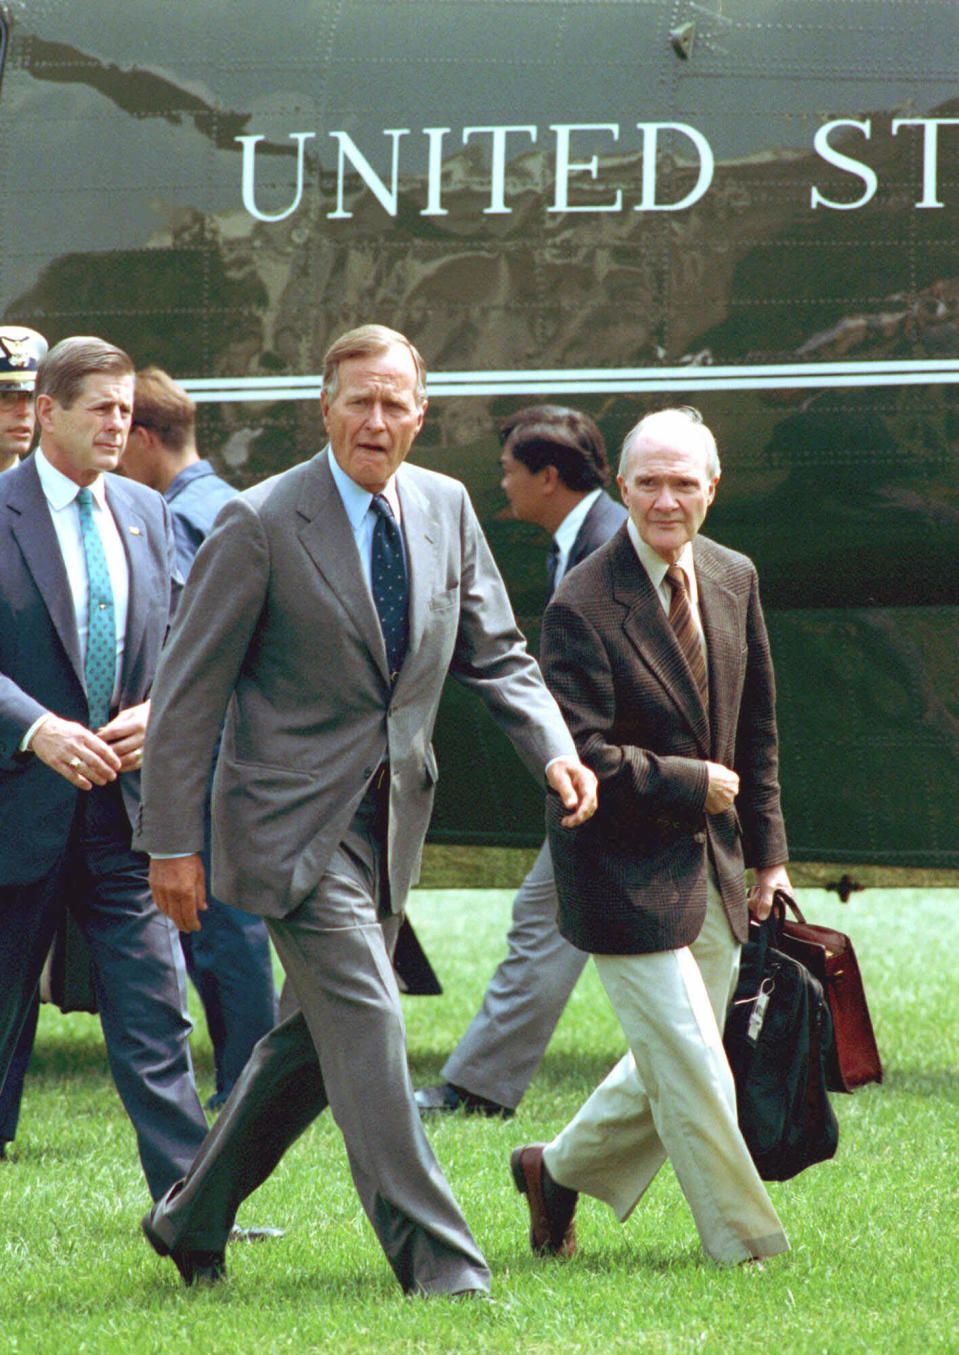 FILE - In this August 19, 1991 file photo, President George Bush, accompanied by National Security Adviser Brent Scowcroft, right, arrives back at the White House after he interrupteed his vacation following the overthrow of Soviet President Gorbachev. A longtime adviser to Presidents Gerald Ford and George H.W. Bush has died. Brent Scowcroft was 95. A spokesperson for the late President Bush says Scowcroft died Thursday of natural causes at his home in Falls Church, Virginia. (AP Photo/Barry Thumma)